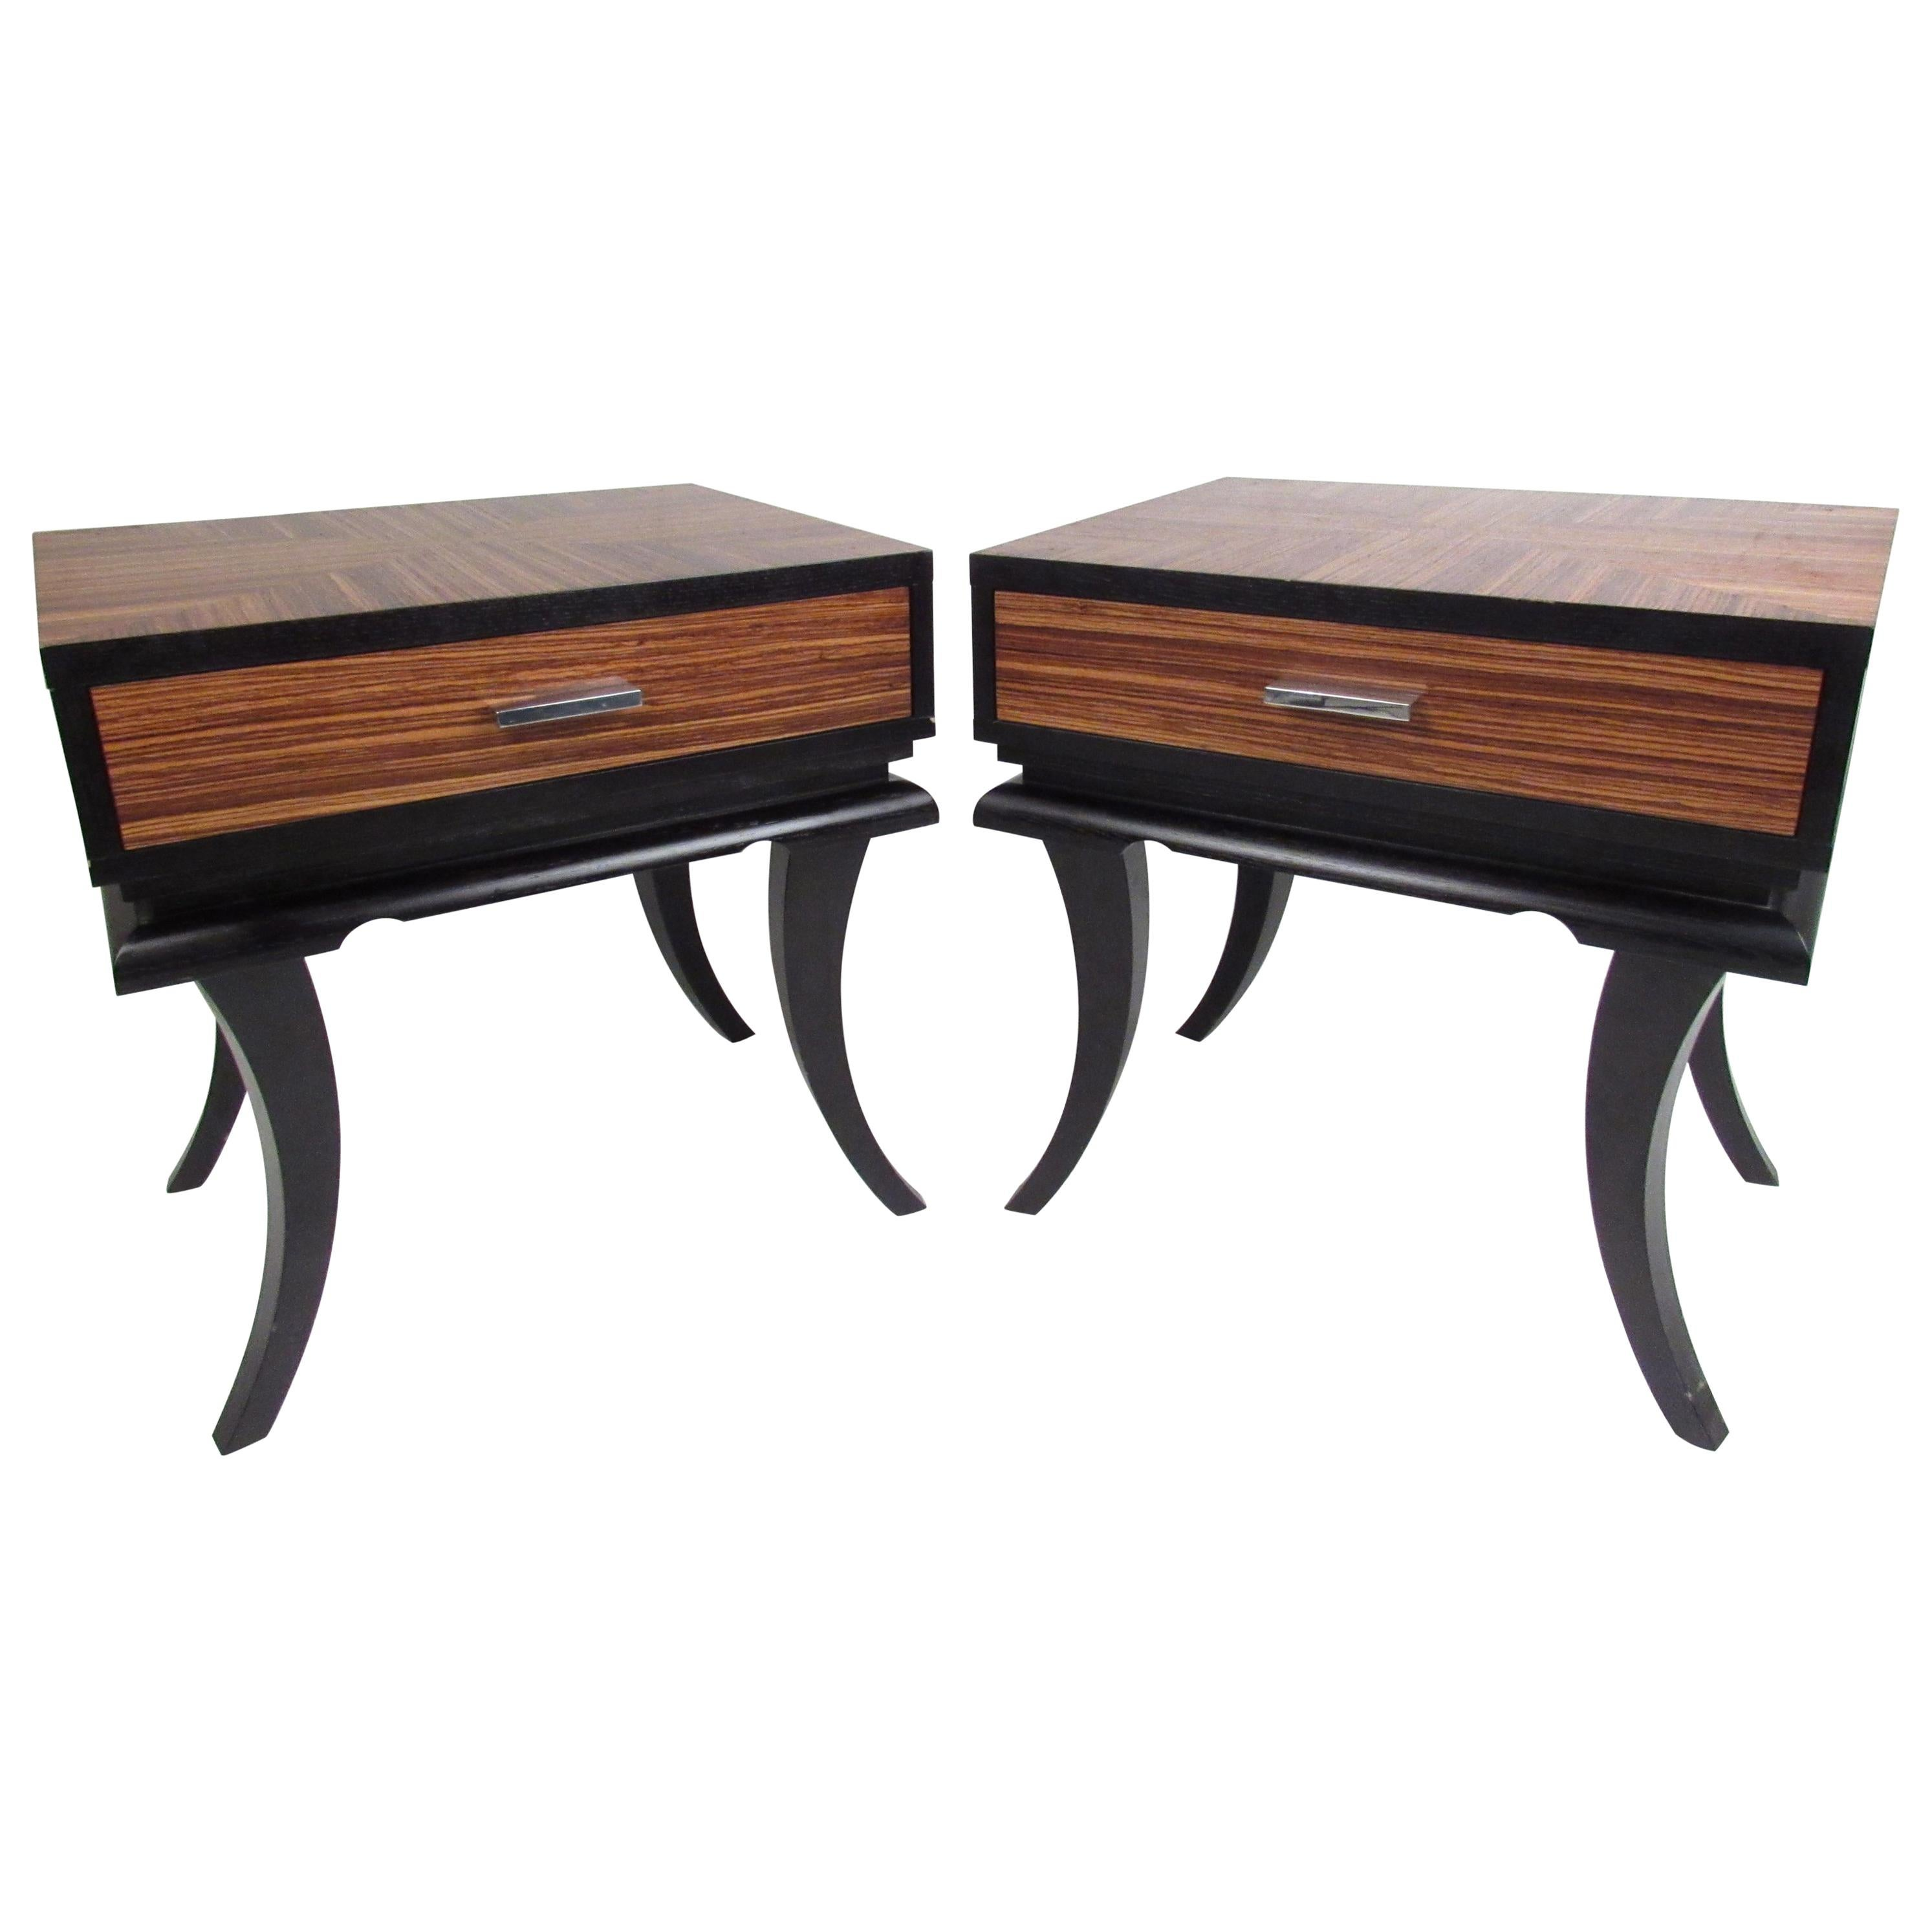 Pair of Contemporary Modern Nightstands